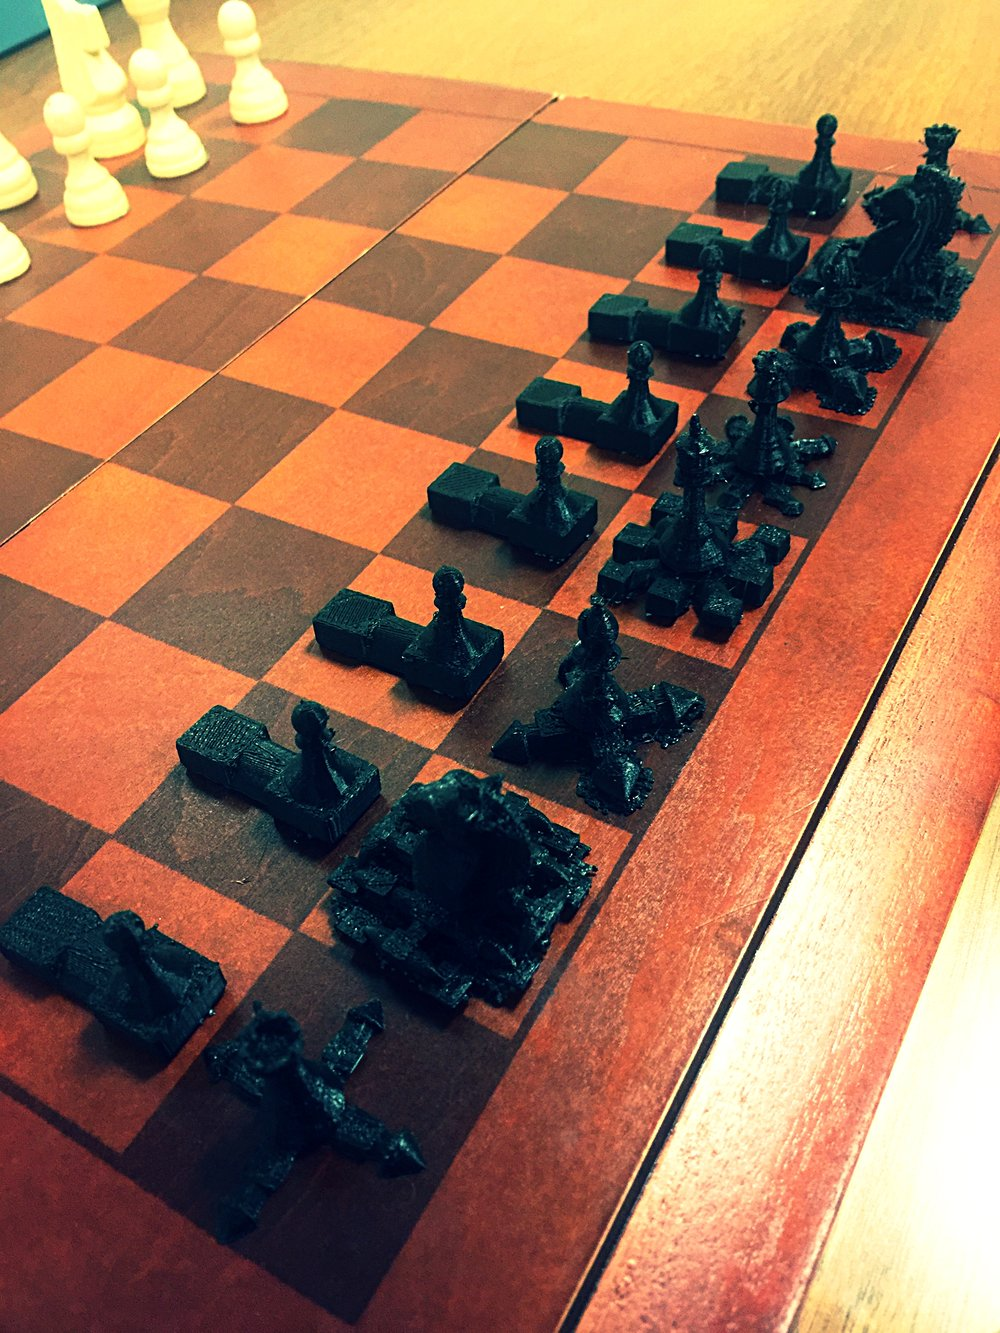 First full-side prototype for instructional chess.